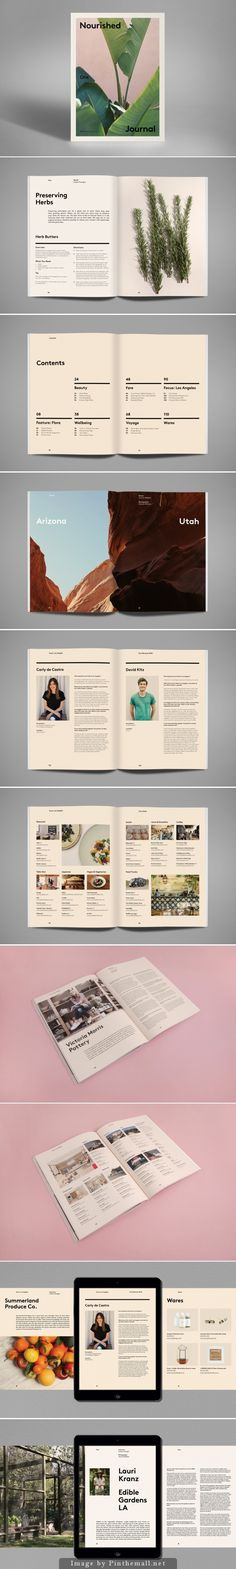 162 best Magazine layout \/ inspiration images on Pinterest - proposal layouts